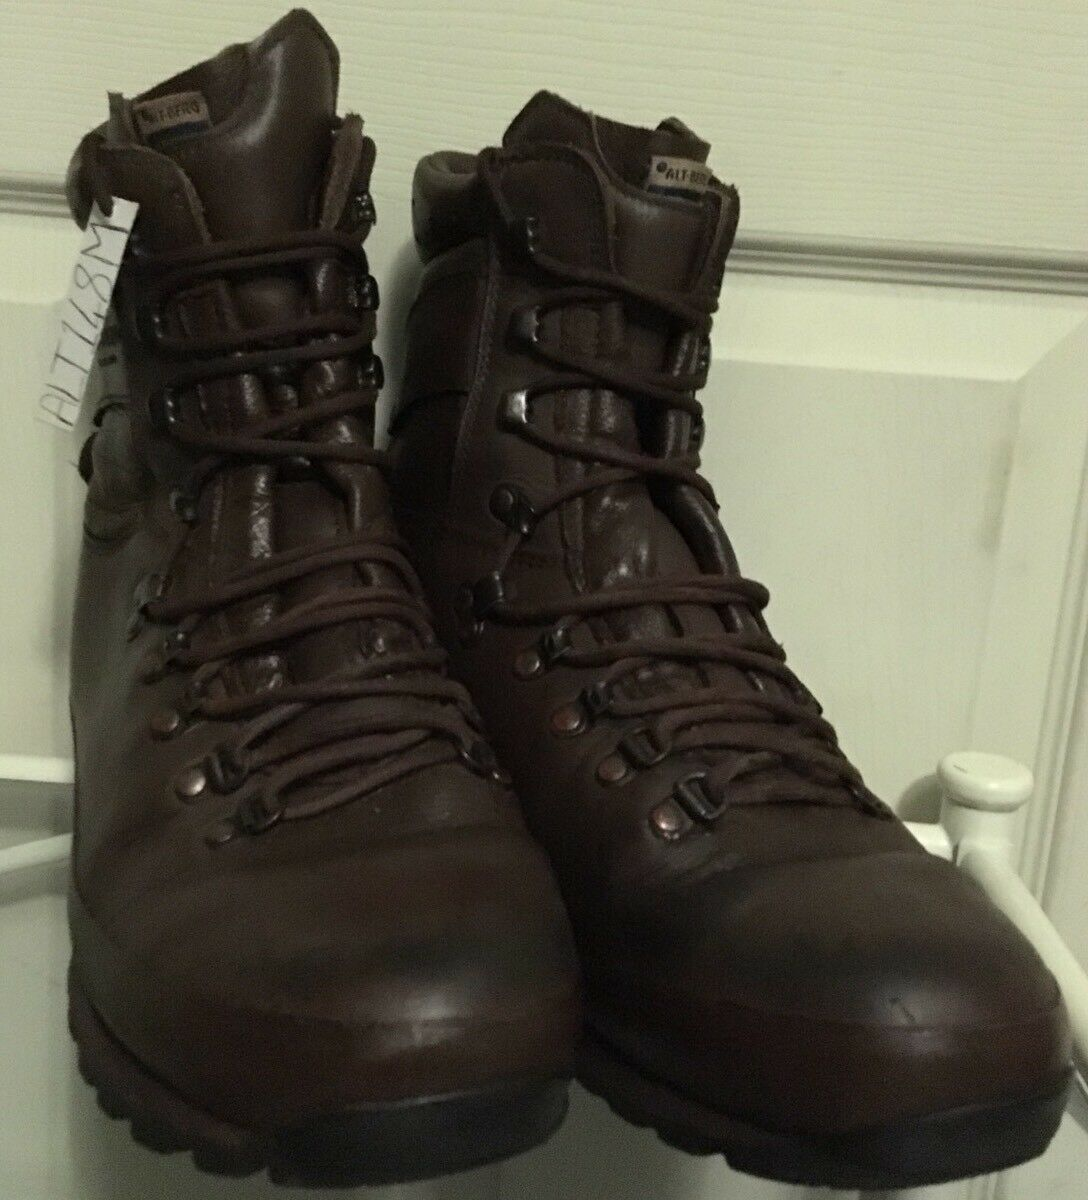 Altberg Defender Brown MTP Army Issue Vibram Sole Male Combat Boots 8M ALT148M